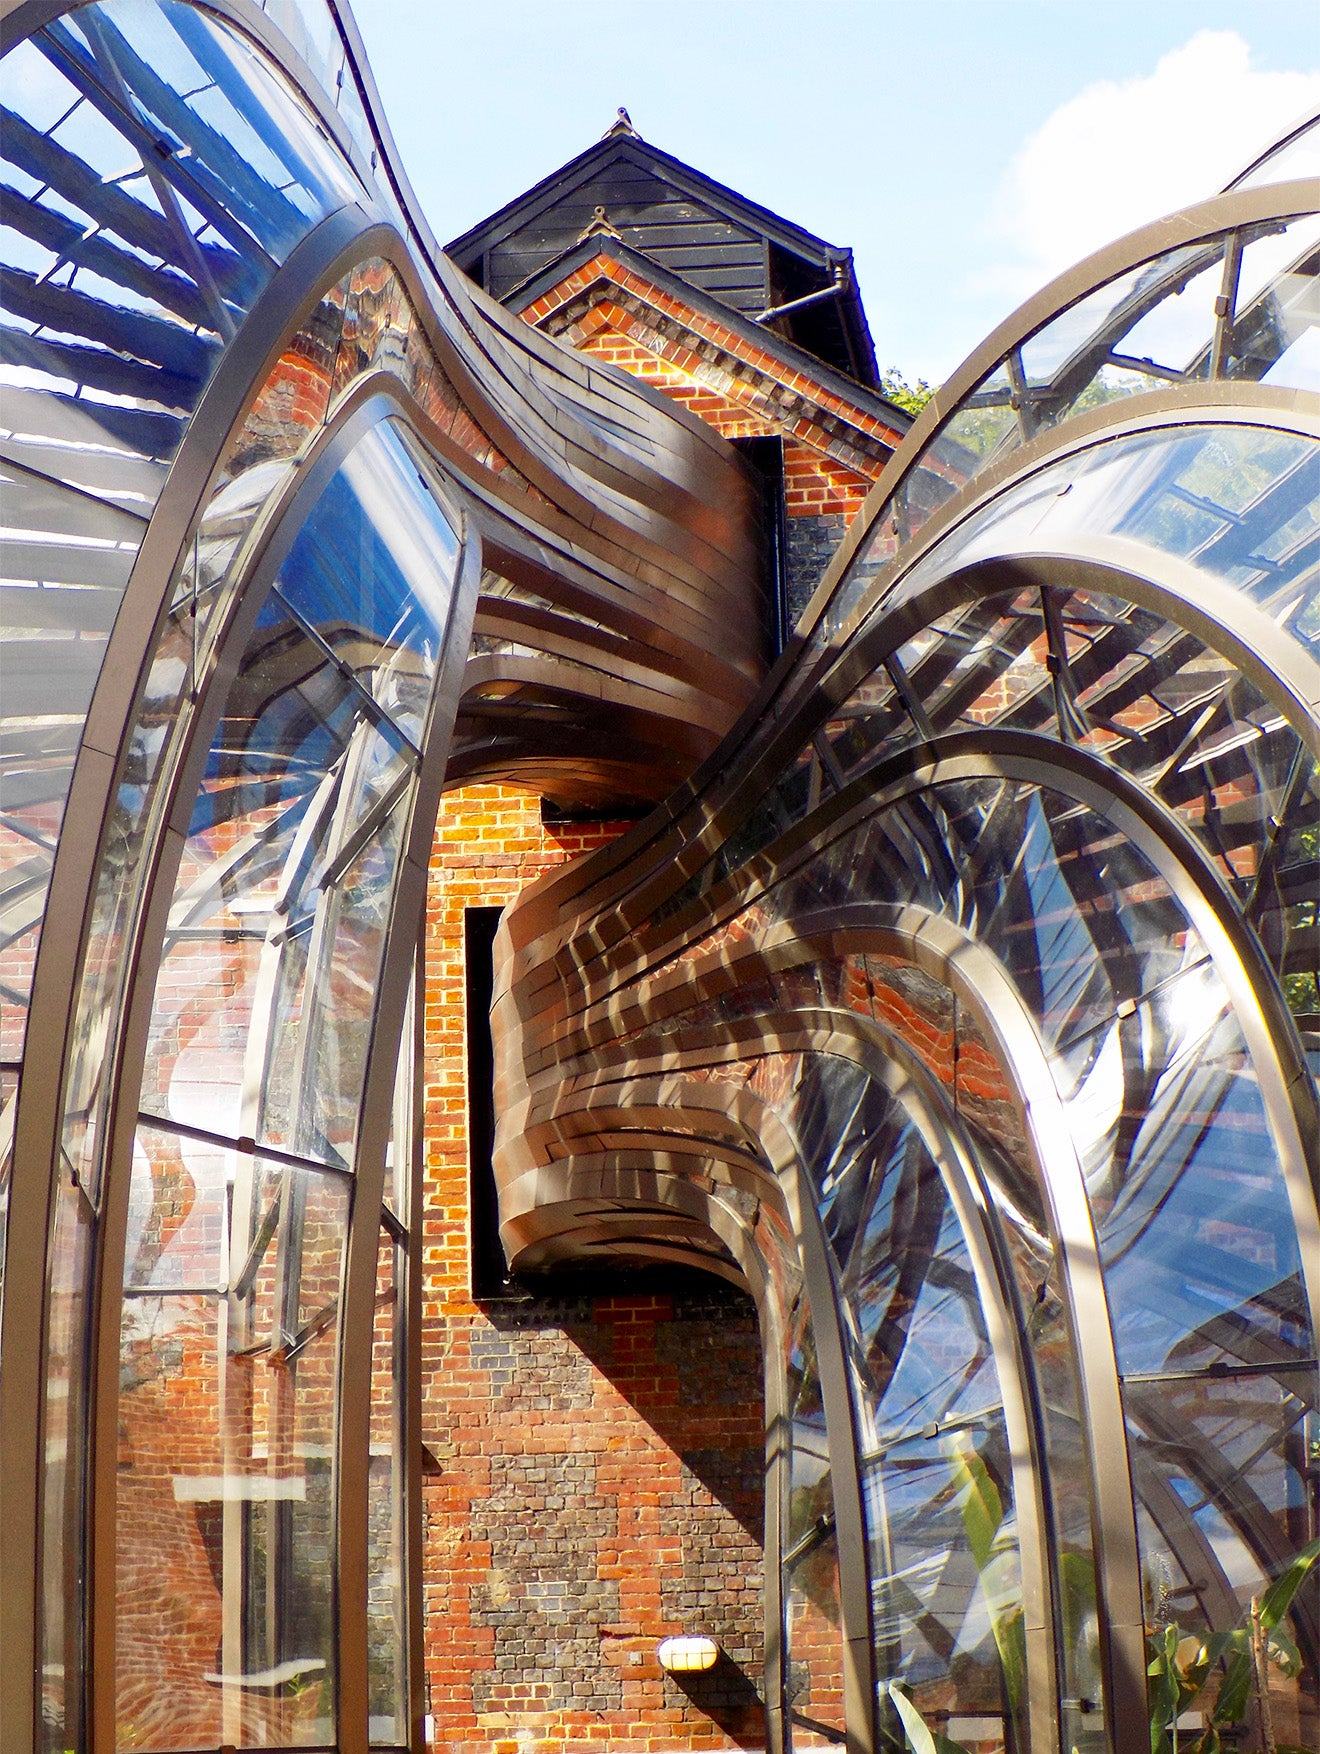 Modern architecture by Thomas Heatherwick Bombay Sapphire distillery